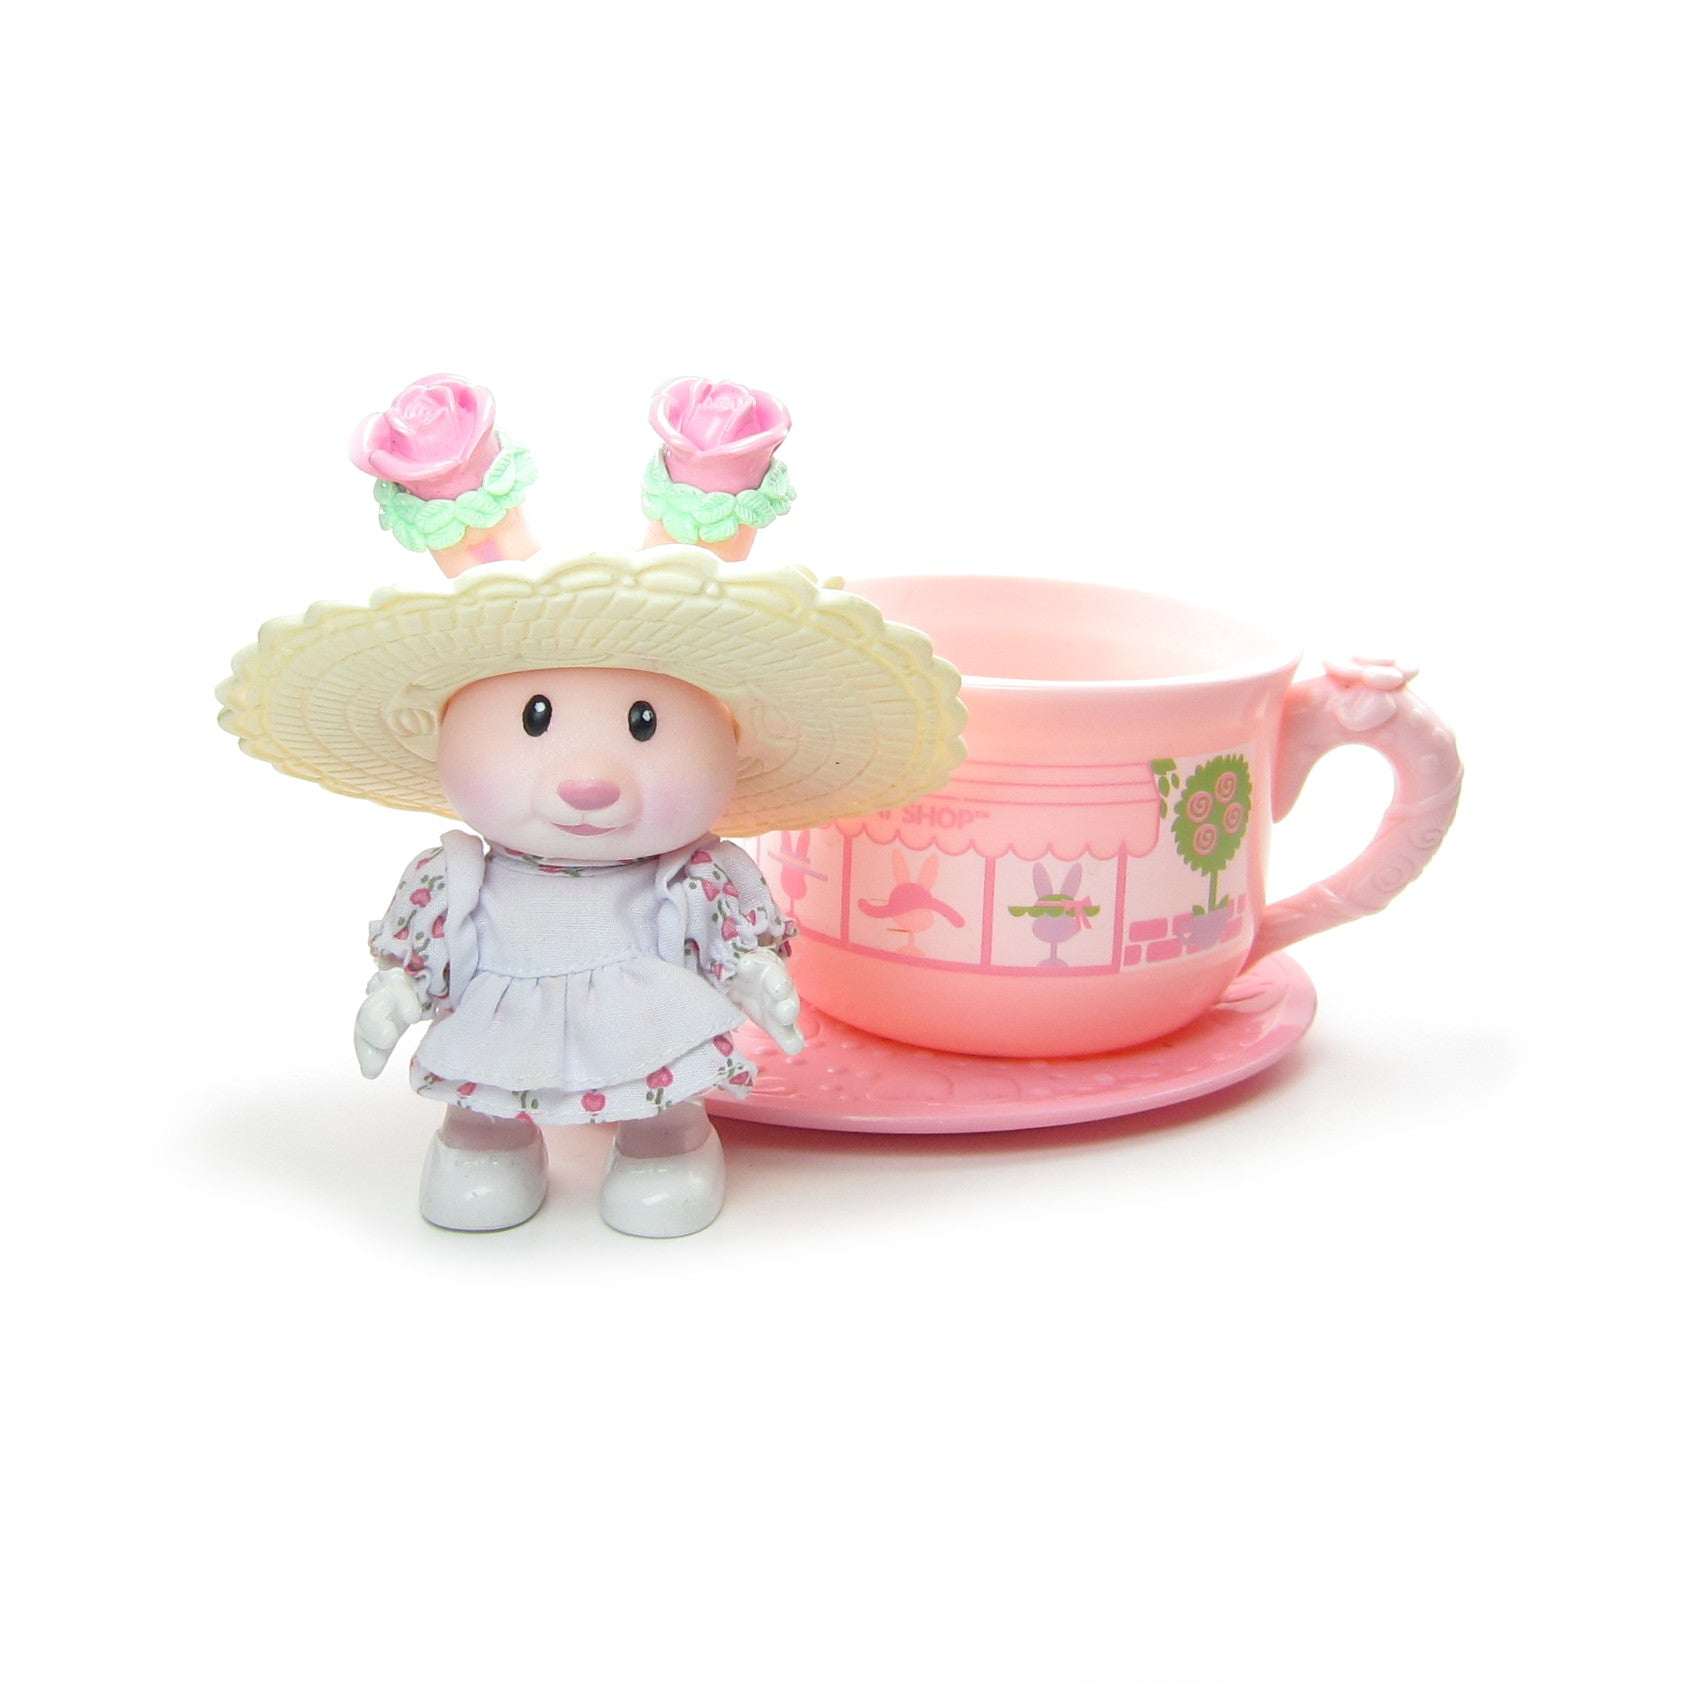 Rose Bonnet and the Just Ears Hat Shop Tea Bunnies toy